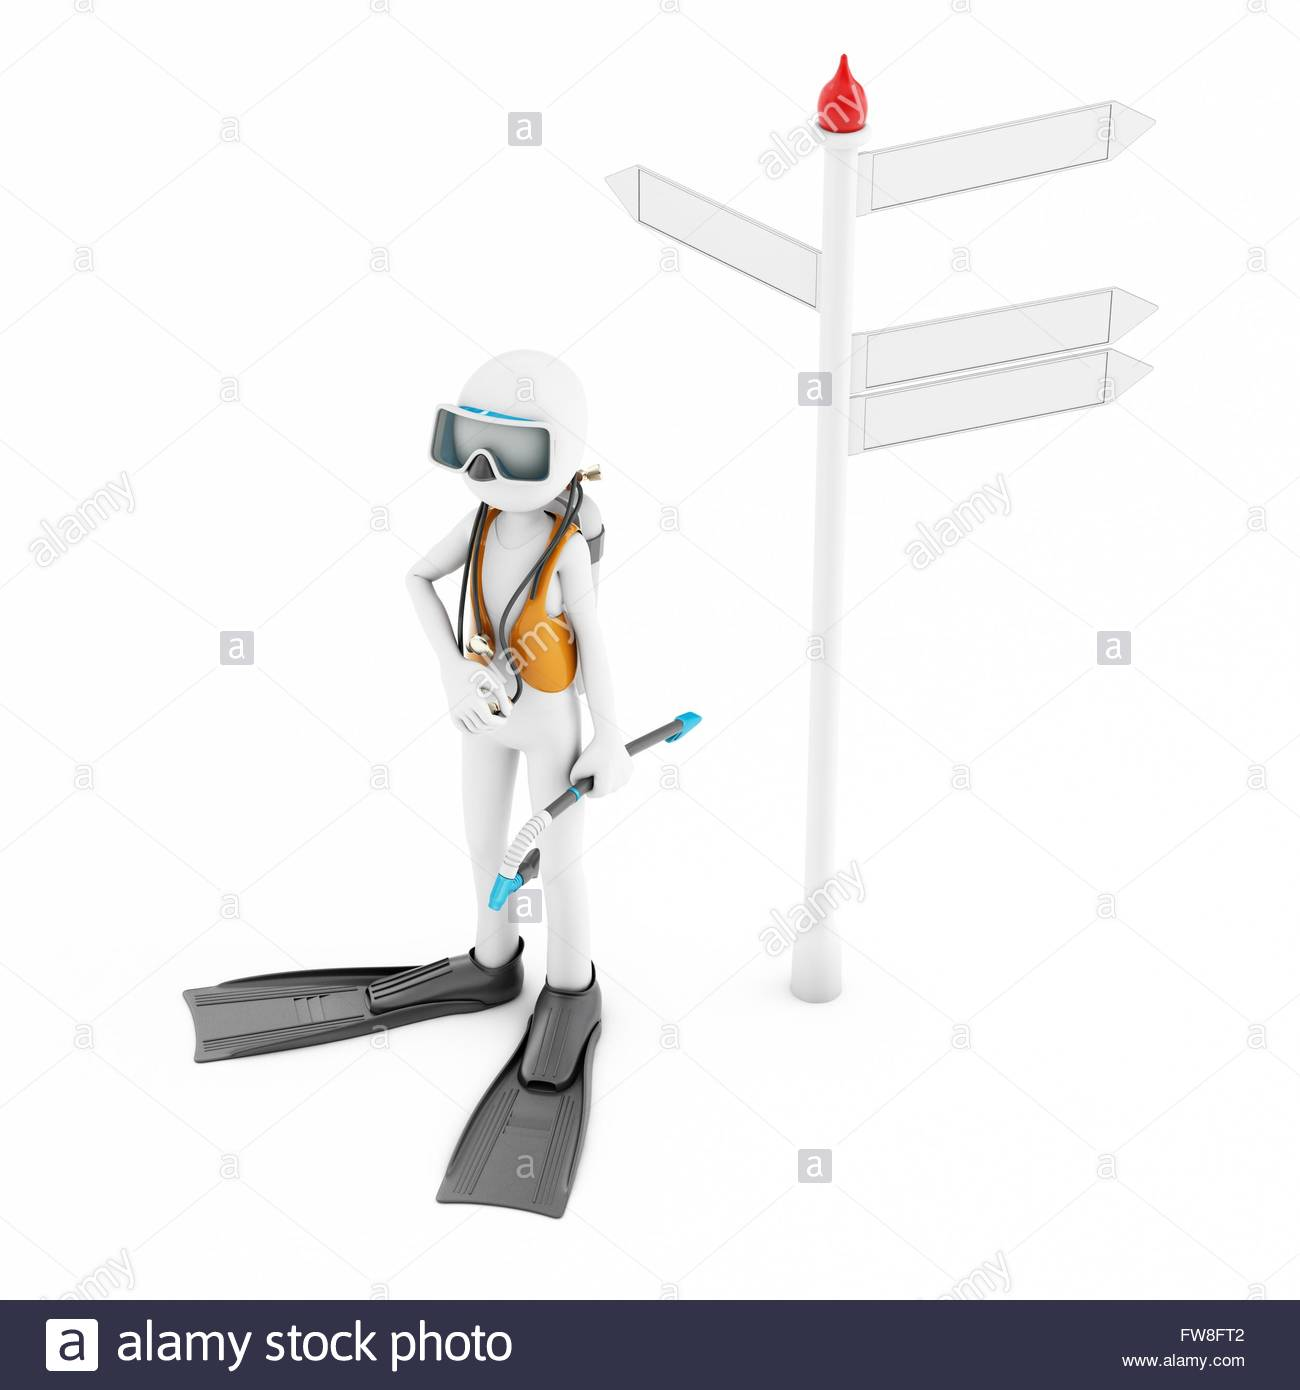 scuba gear diagram ge sub panel wiring 3d man near stock photos with signpost on white background image